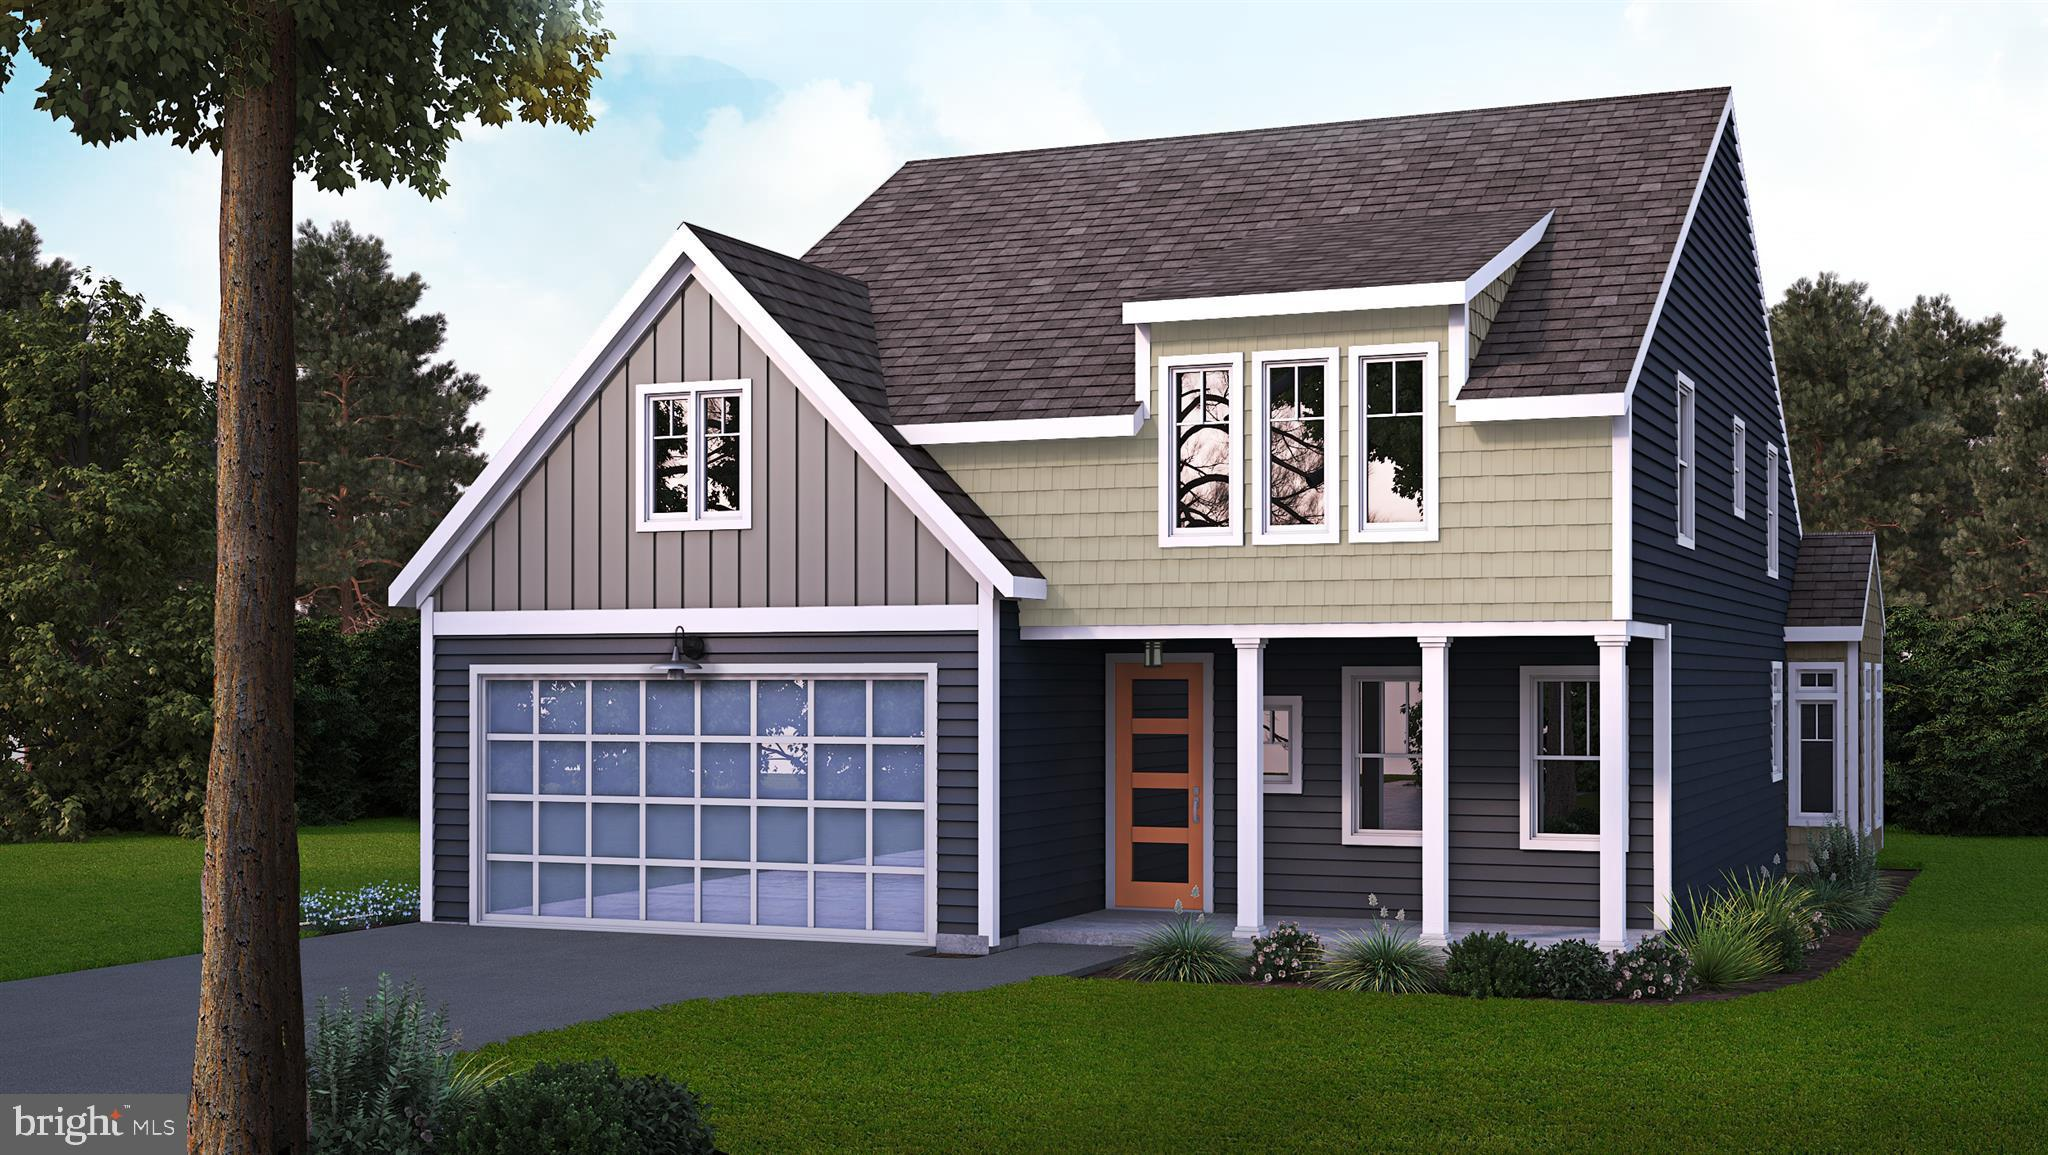 0 THE EDWARD - ALDEN HOMES AT MOUNTAIN MEADOWS, MYERSTOWN, PA 17067